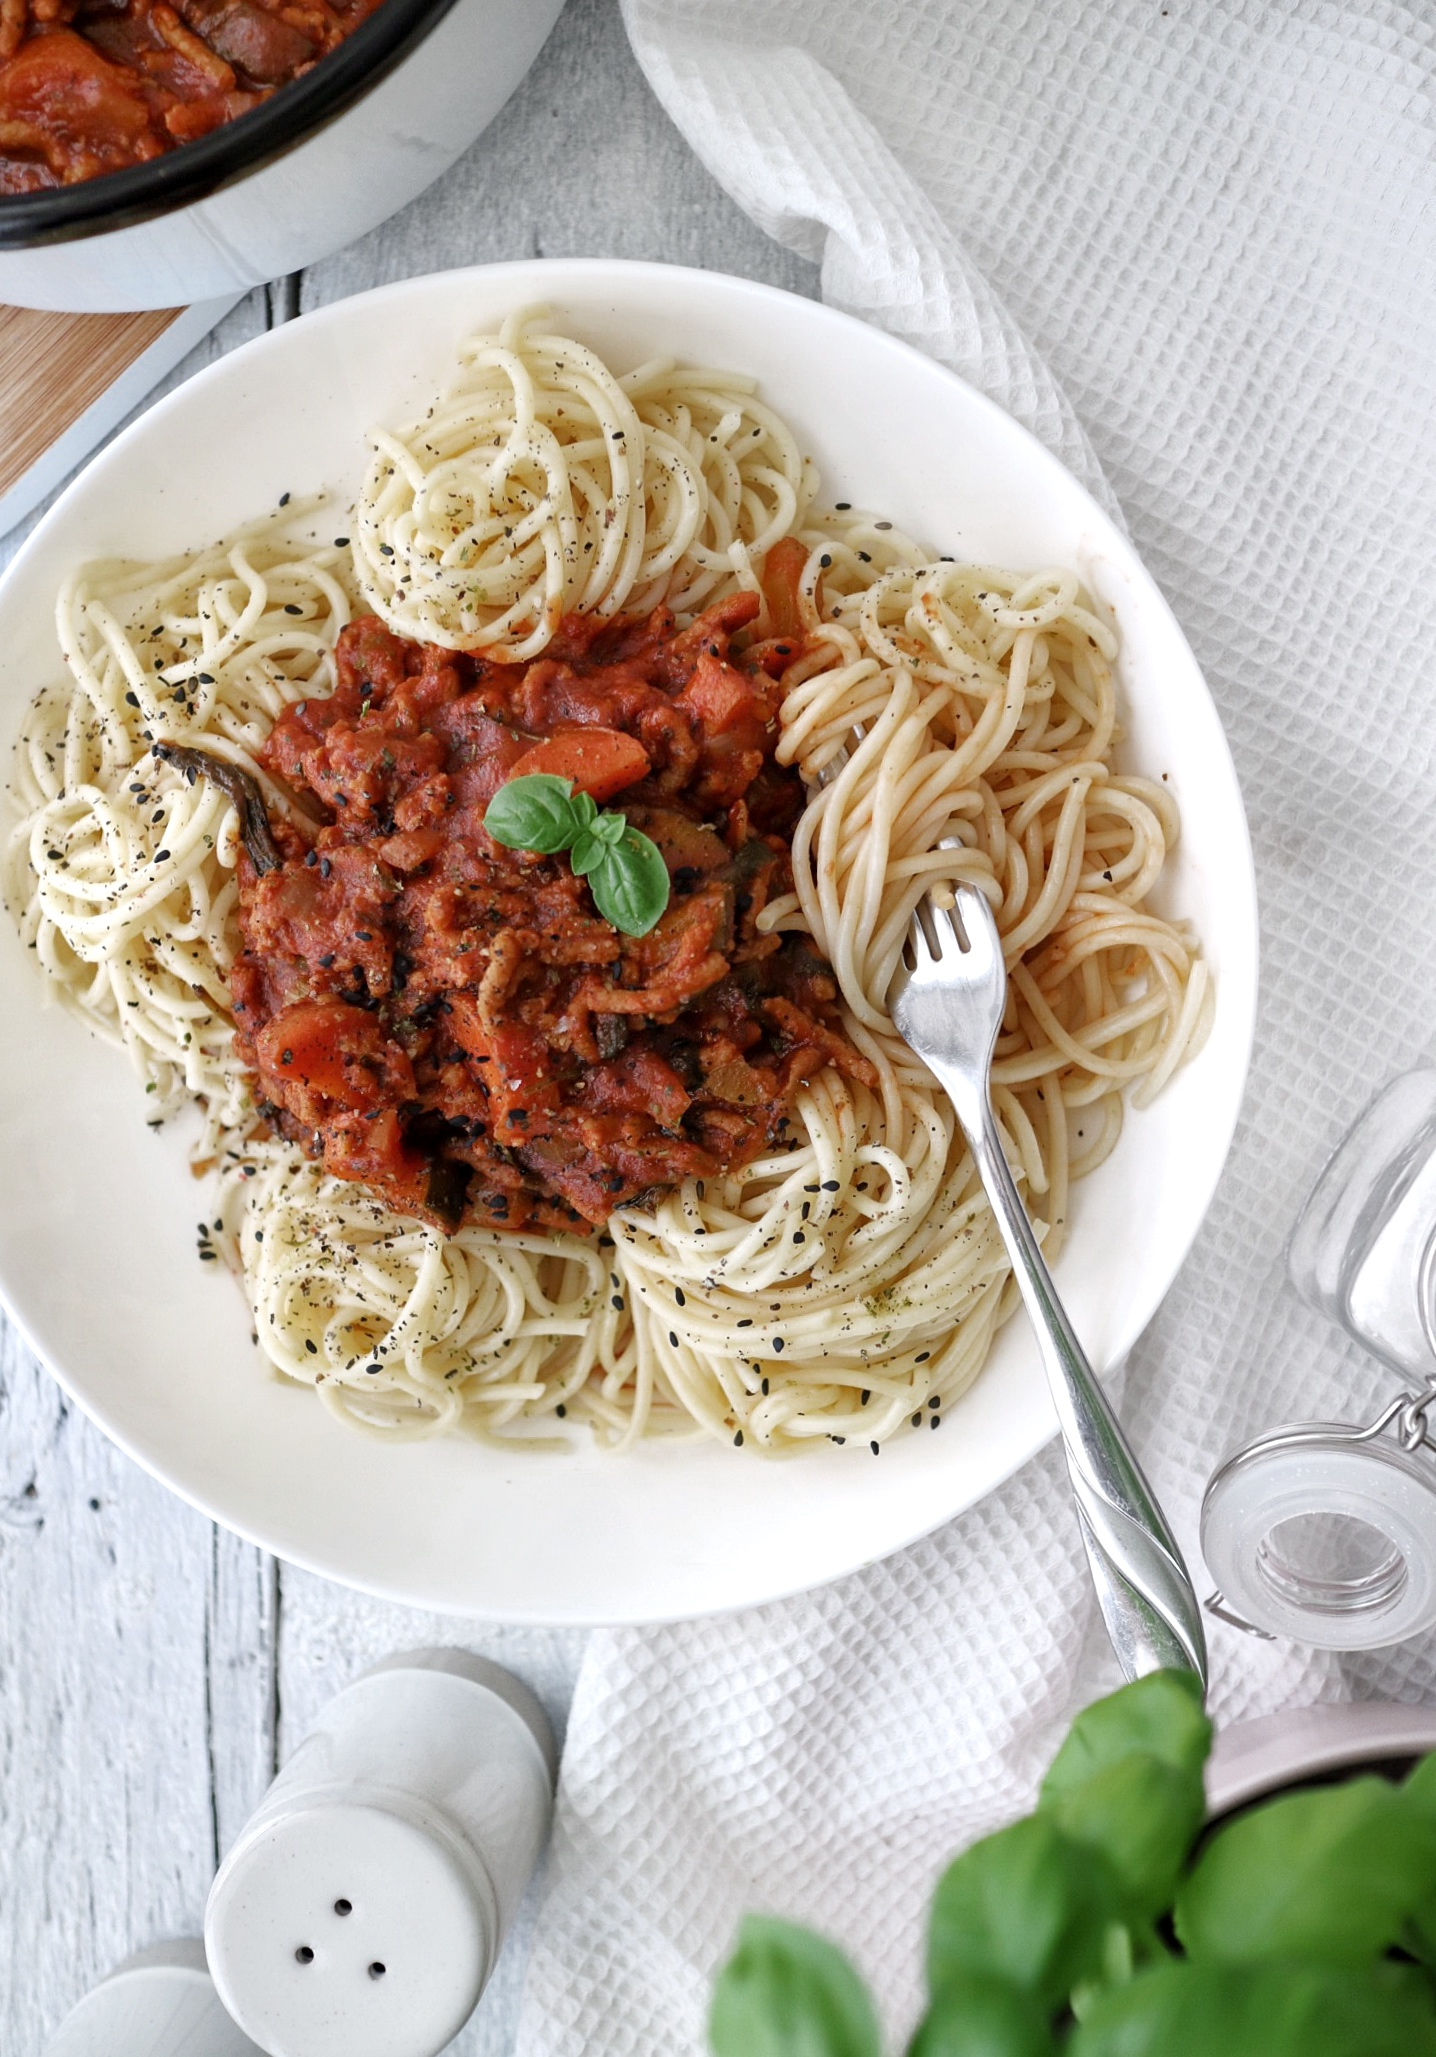 Authentic Vegan Bolognese Recipe